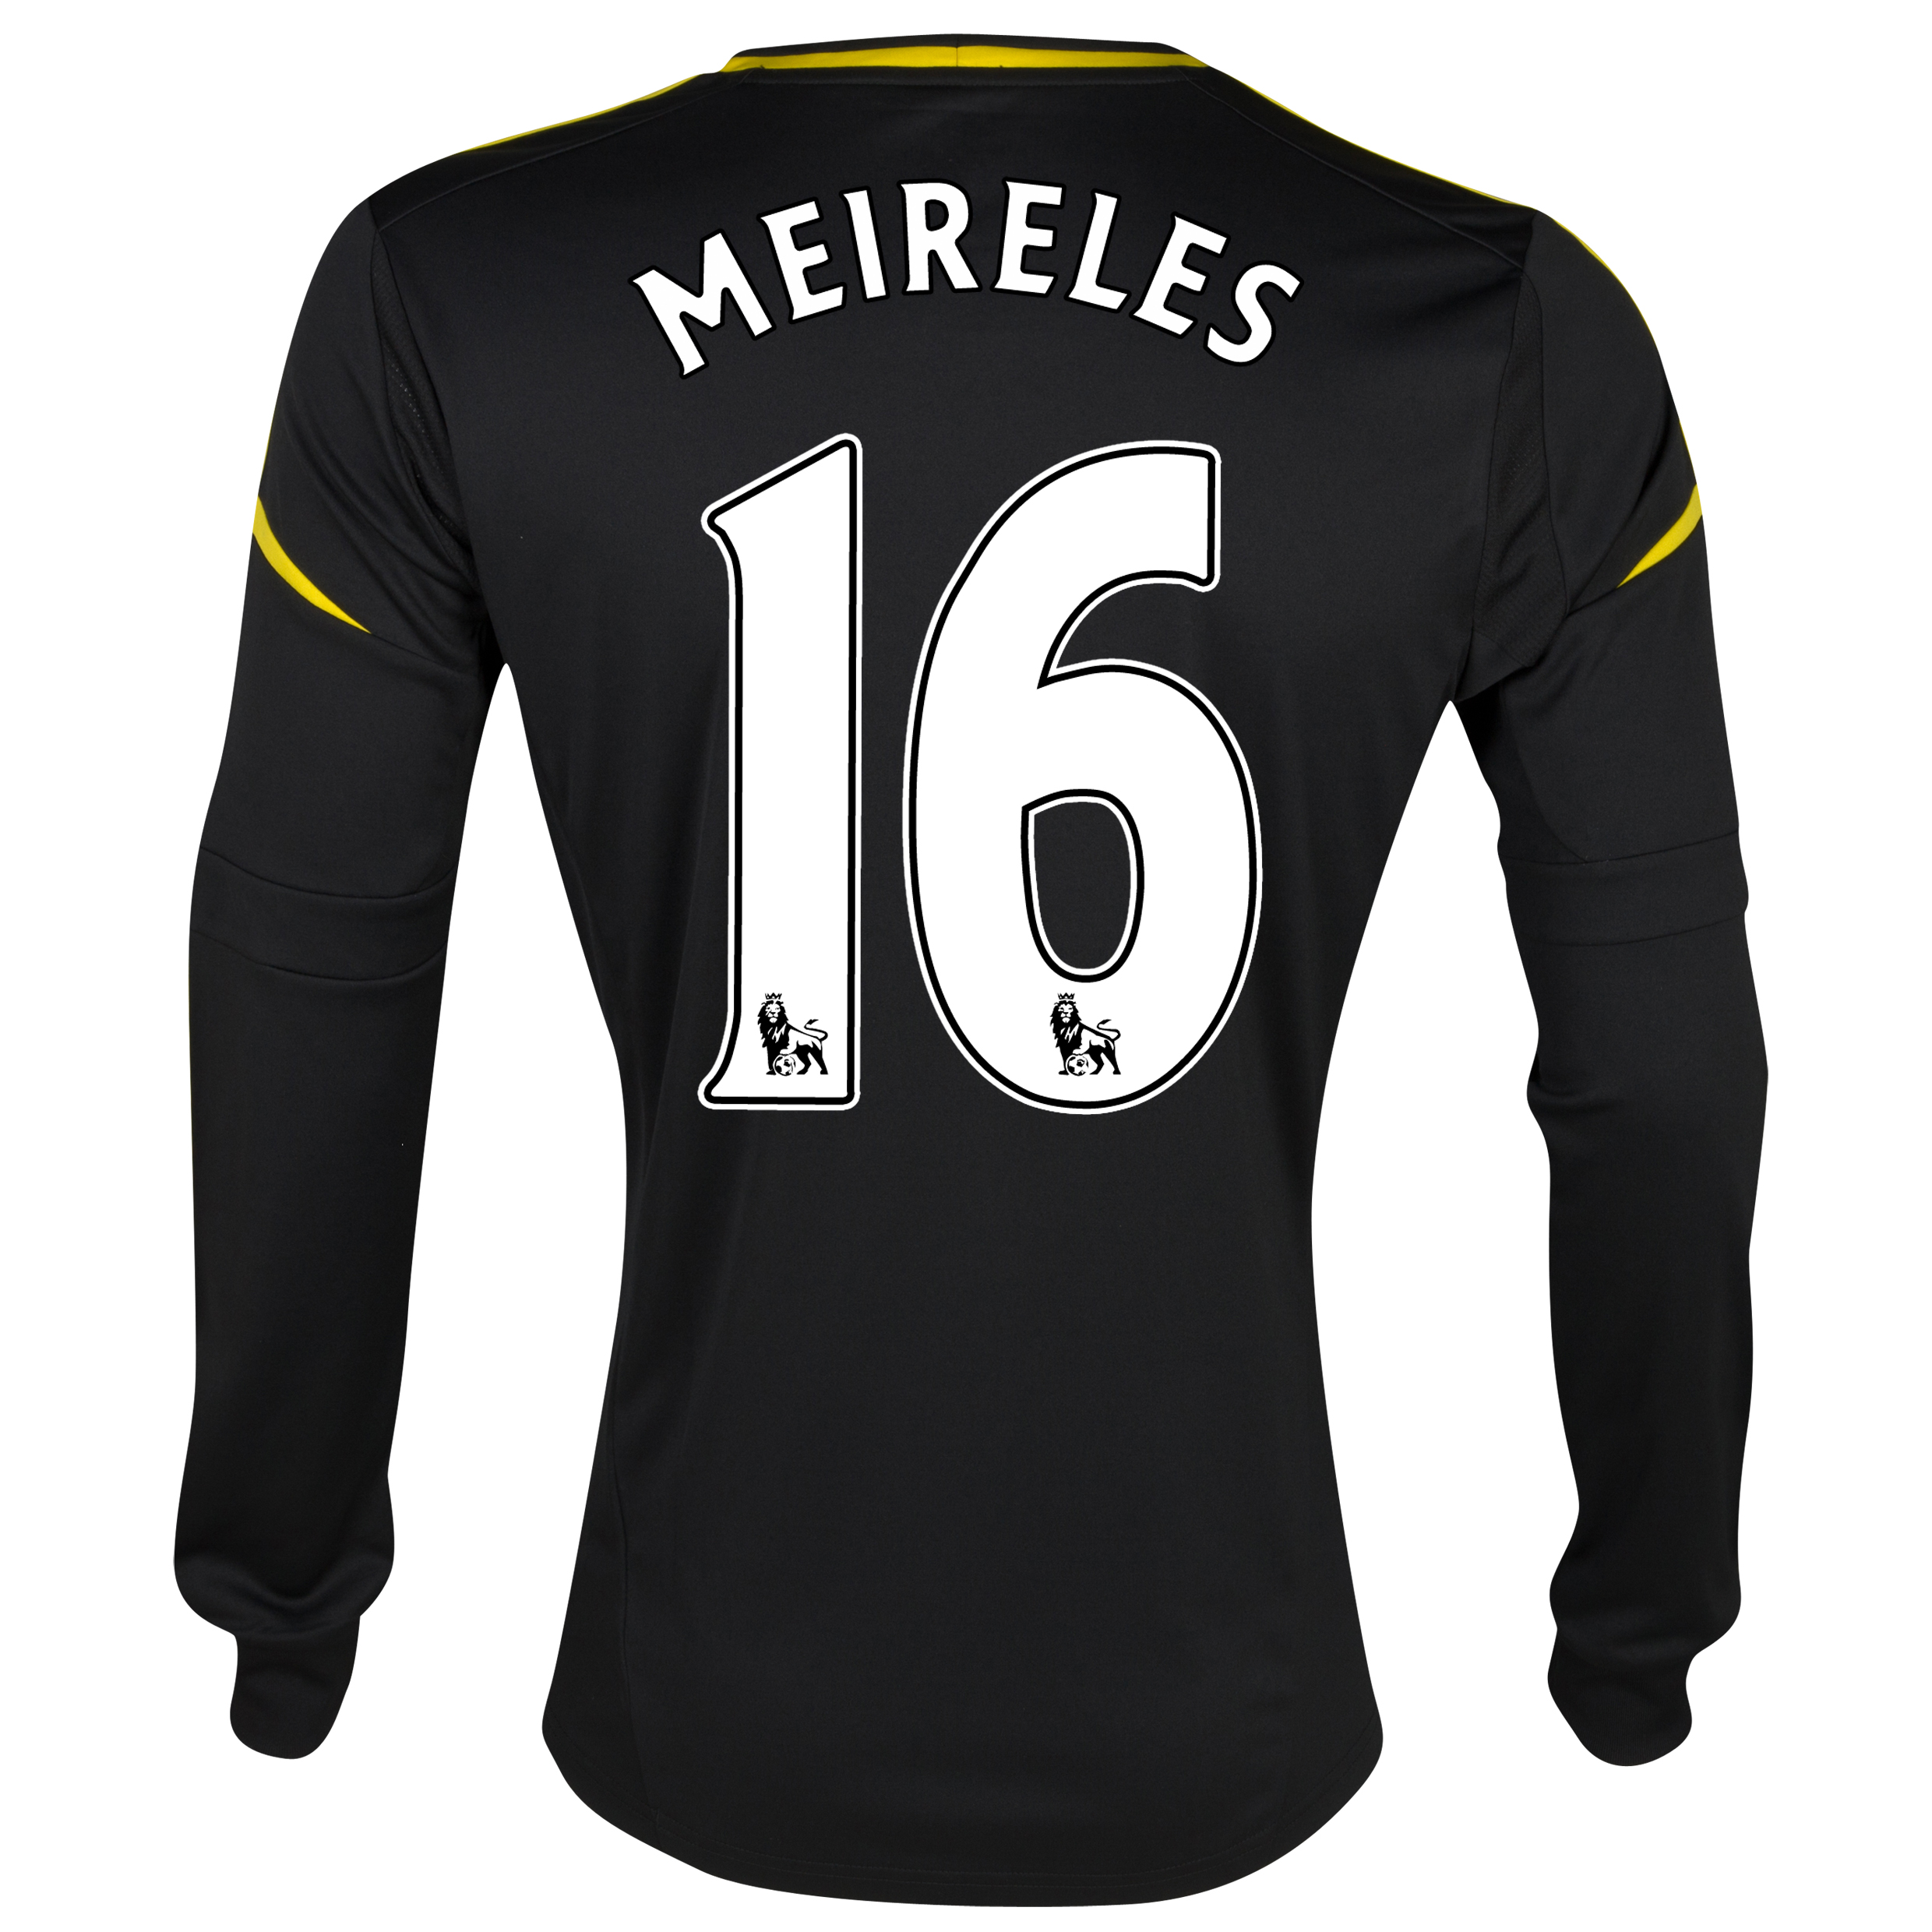 Chelsea Third Shirt 2012/13 - Long Sleeved - Youths with Meireles 16 printing